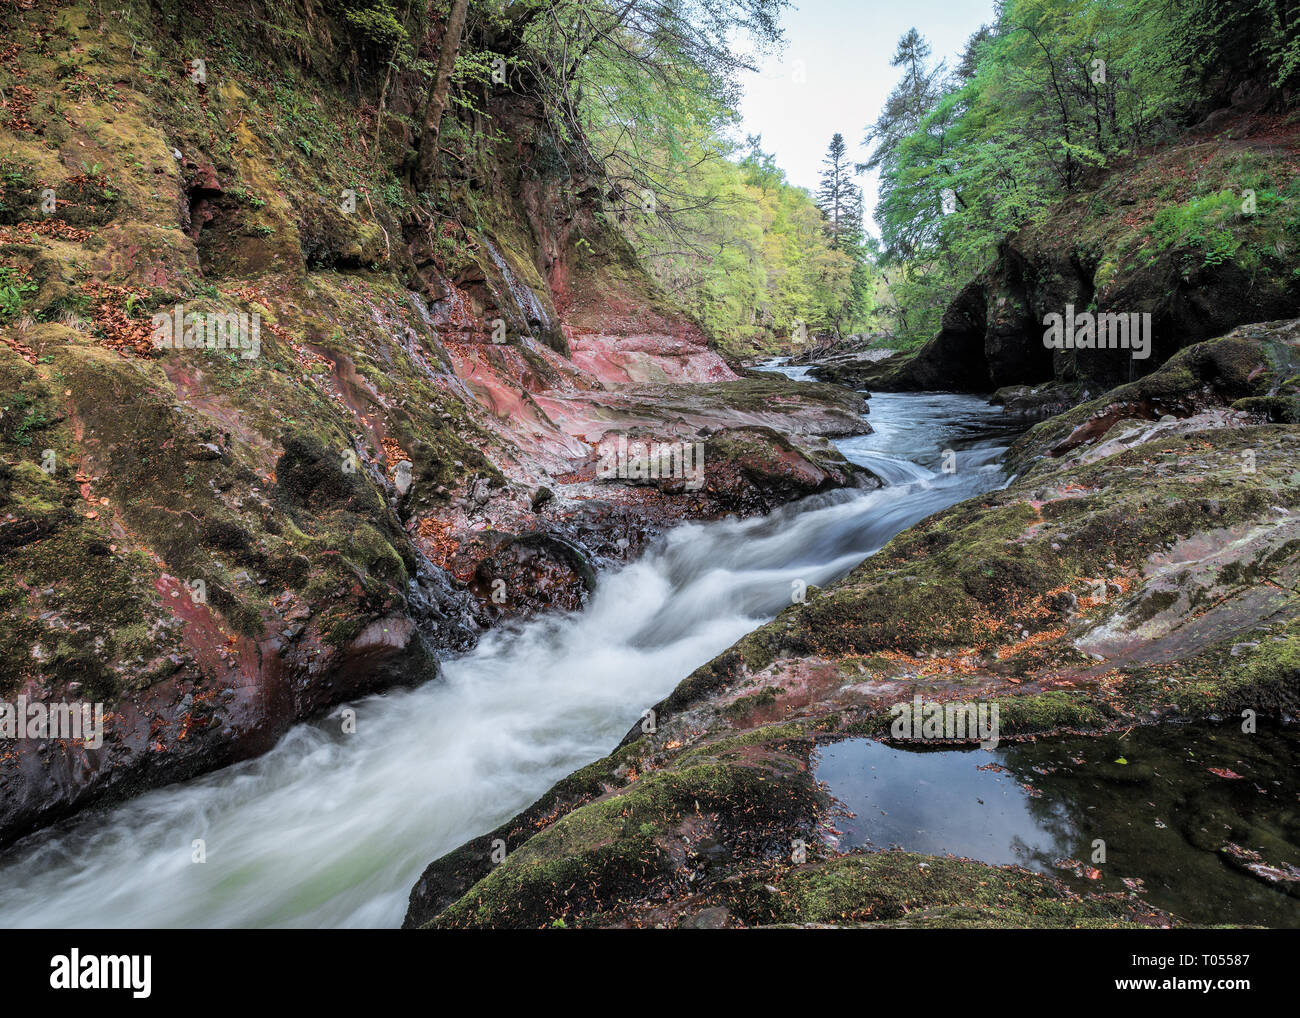 North river Esk flowing through a rocky gully in Autumn near Edzell, Angus, Scotland - Stock Image